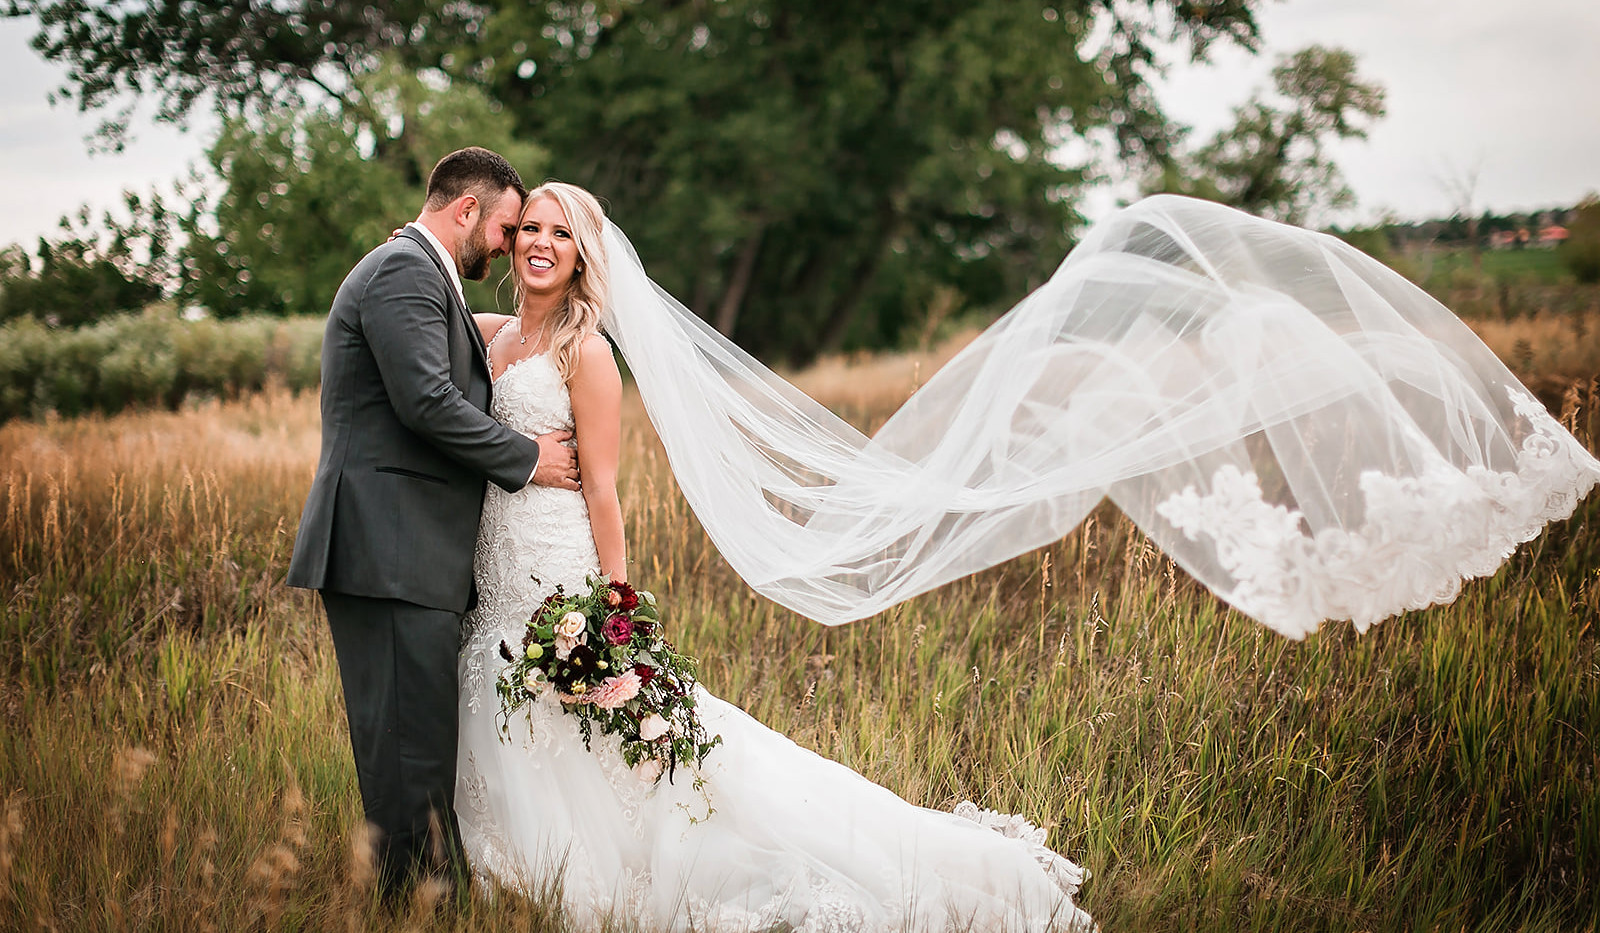 Ryan and Steffanie's Wedding, August 2018 Photo Credit: Tallie Johnson Photography